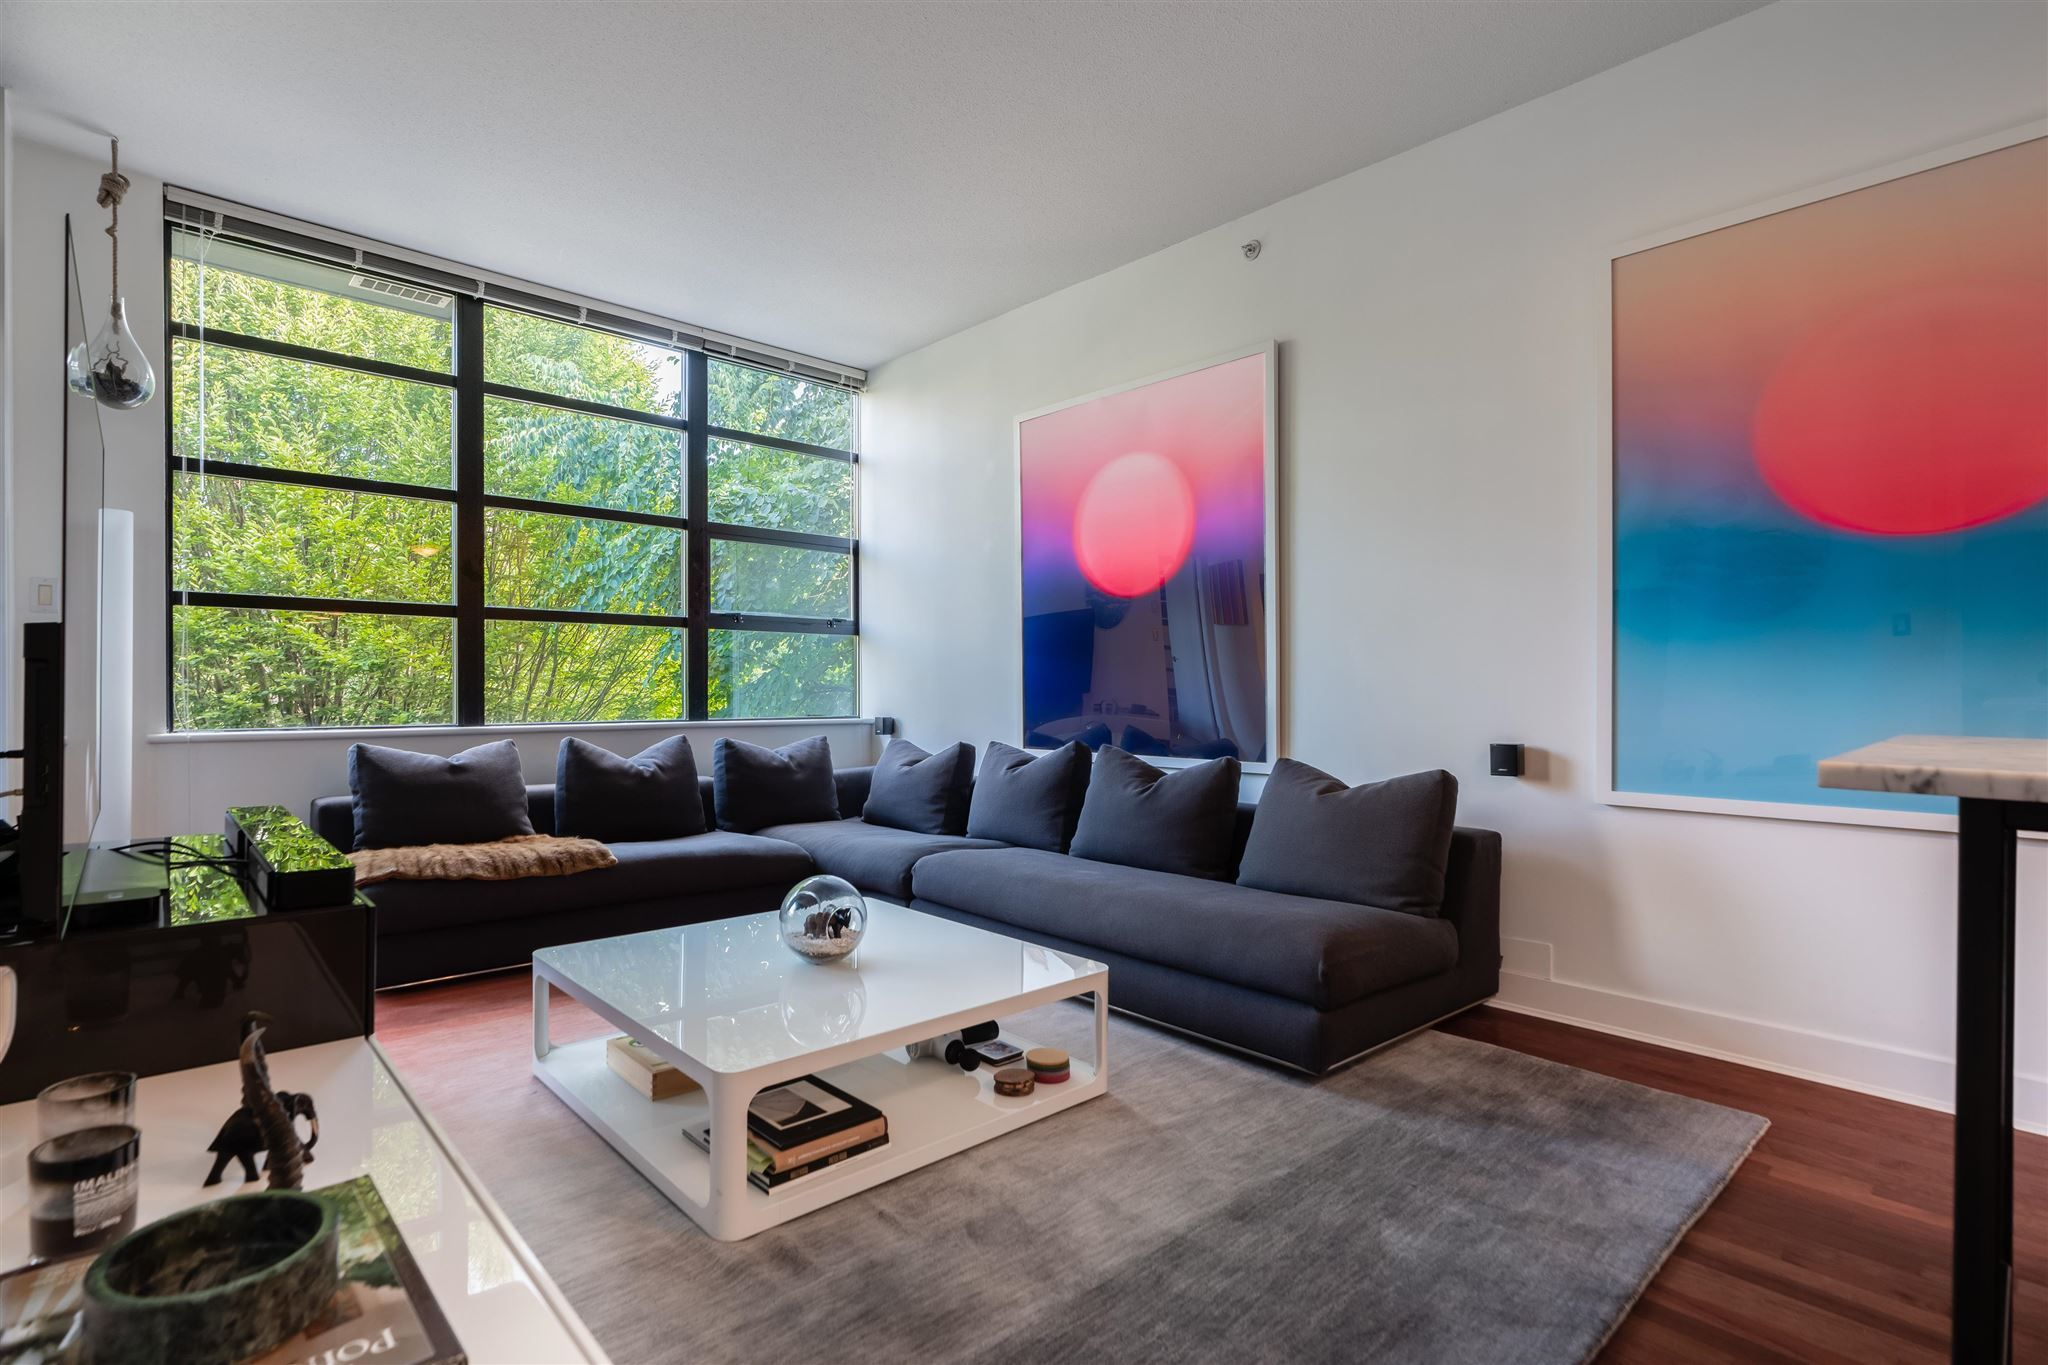 """Main Photo: 305 2828 YEW Street in Vancouver: Kitsilano Condo for sale in """"Bel-Air"""" (Vancouver West)  : MLS®# R2602736"""